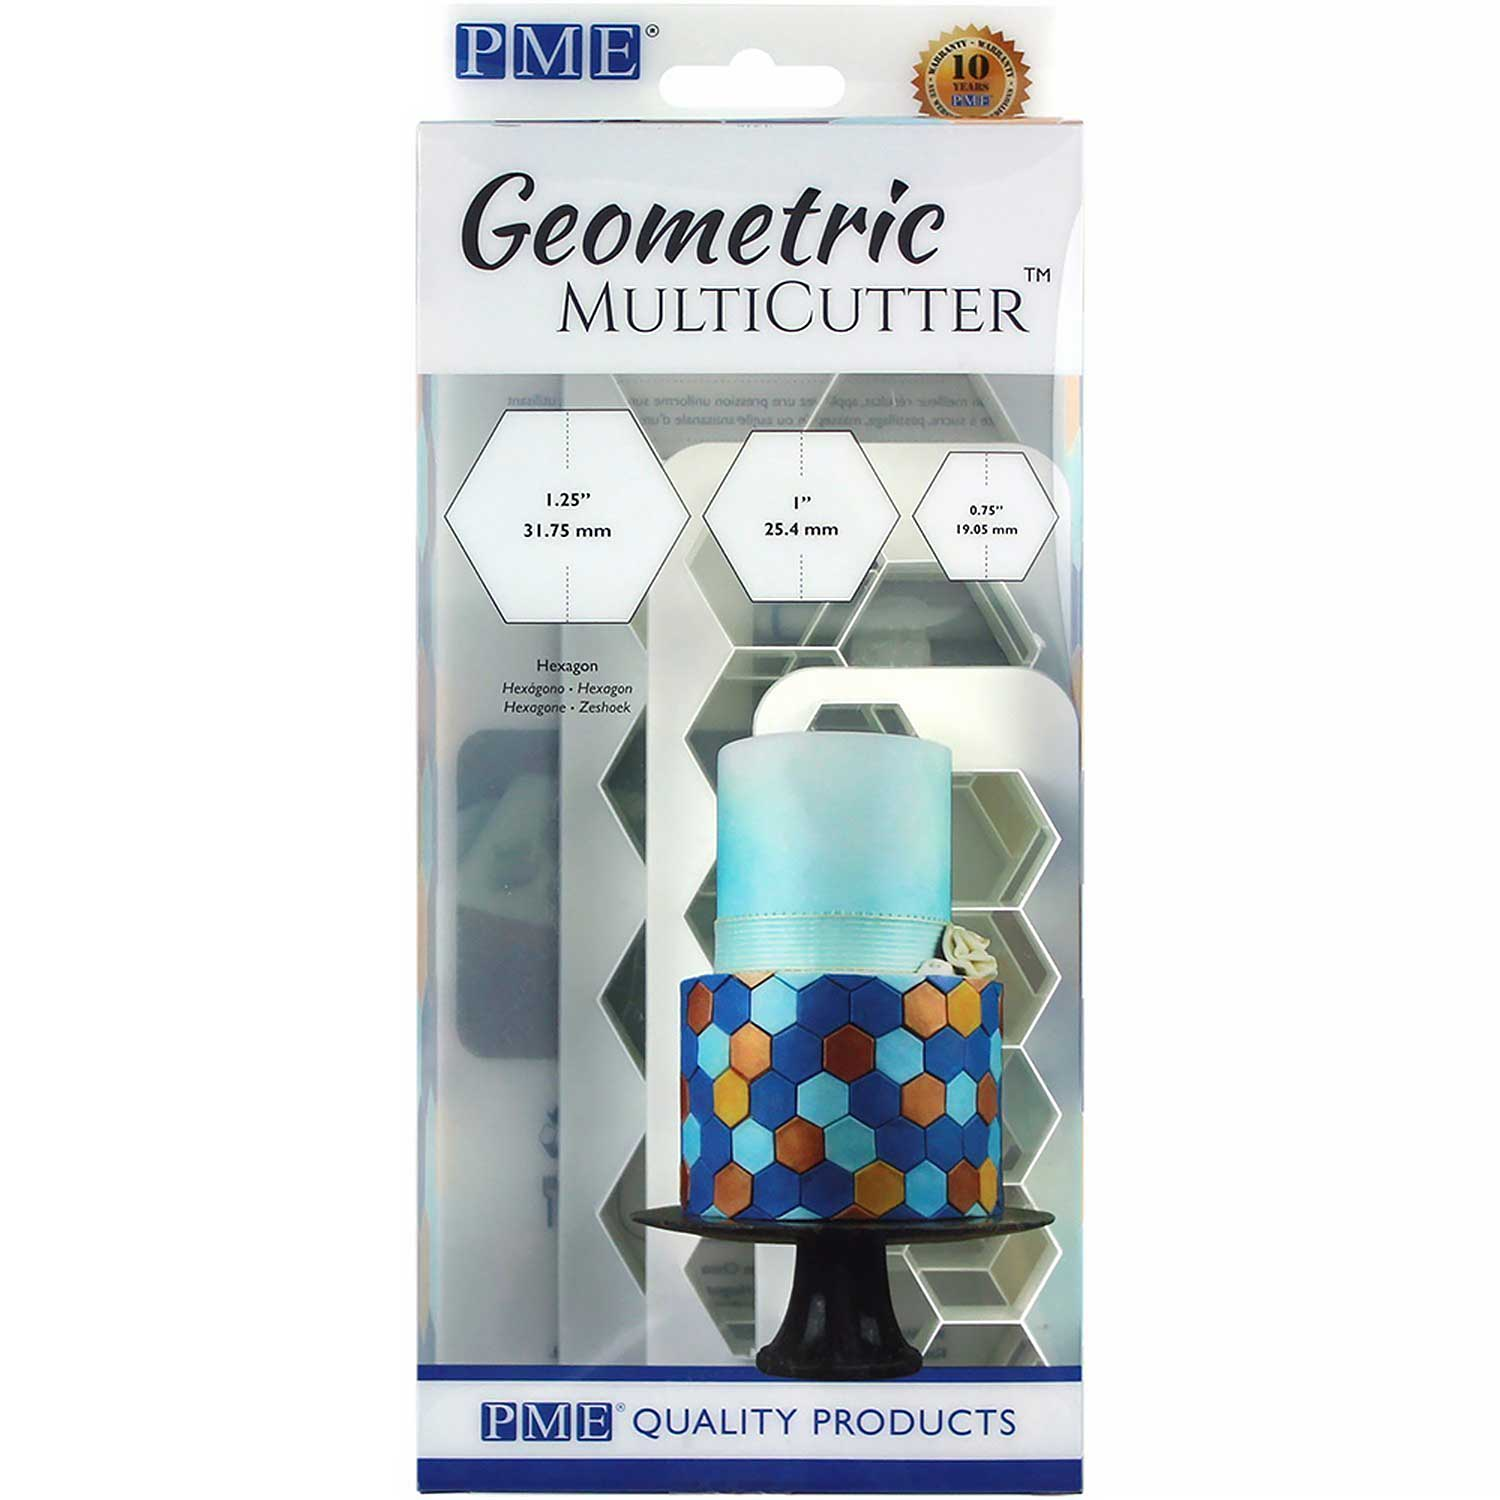 Hexagon Geometric Multicutter™ Set